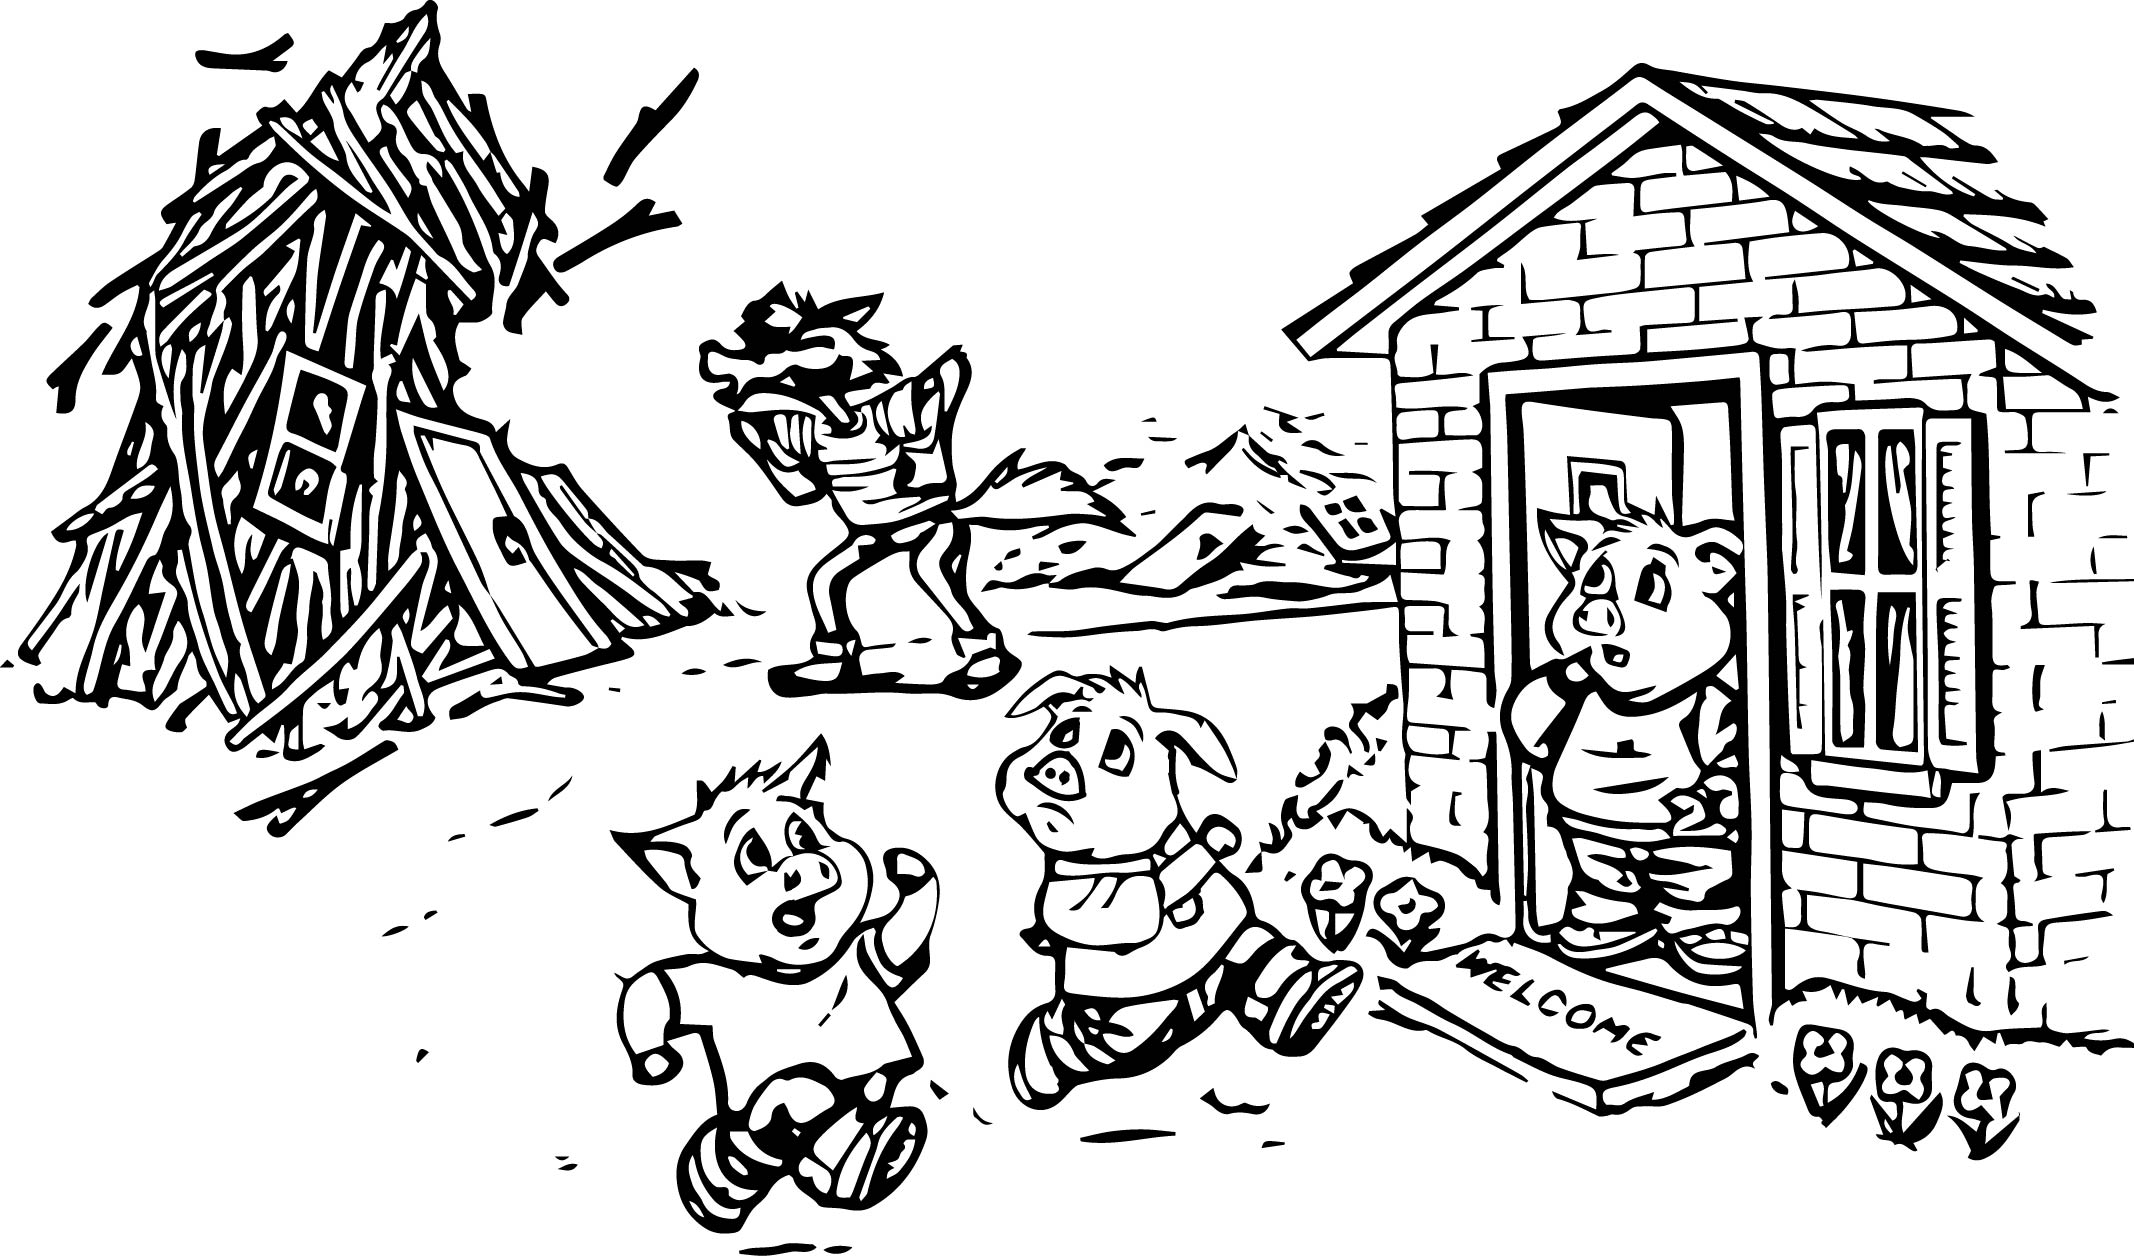 Bad Wolf Blowing 3 Little Pigs Coloring Page | Wecoloringpage